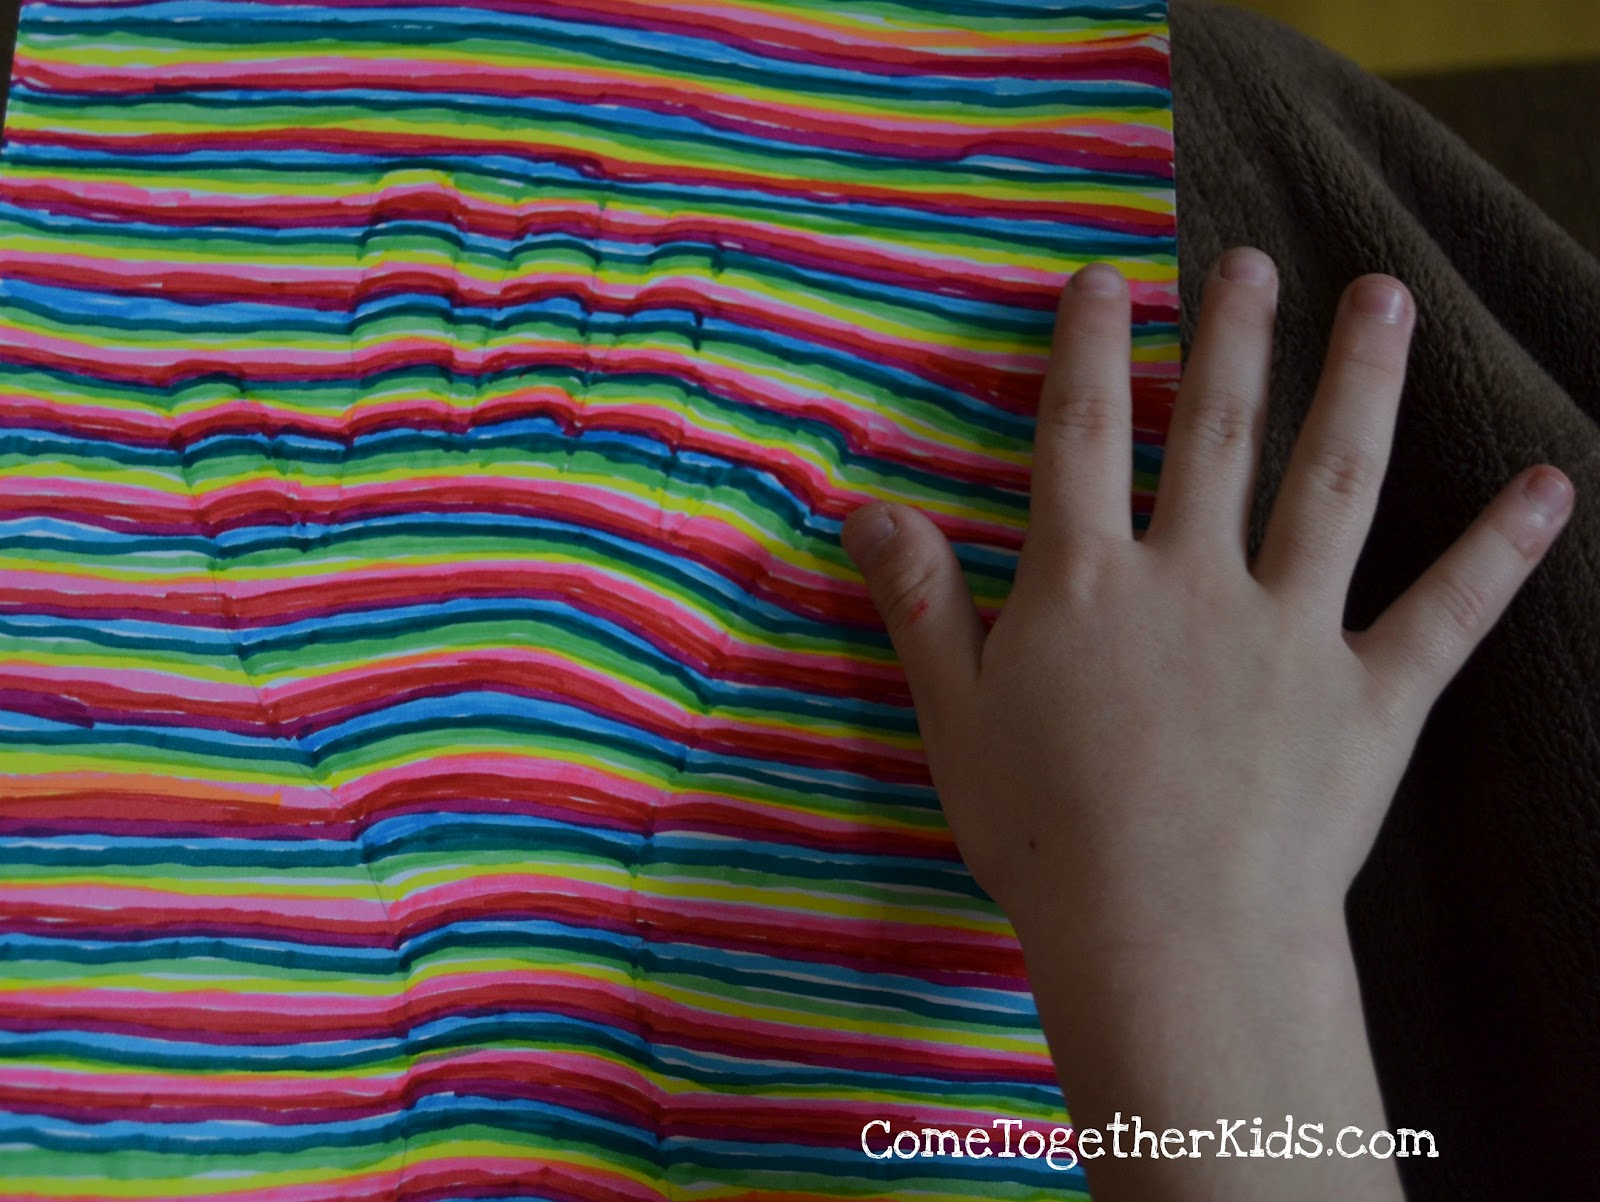 optical illusion illusions handprint hand op draw kid straight pencil lines craft line children drawing easy hands markers trace projects